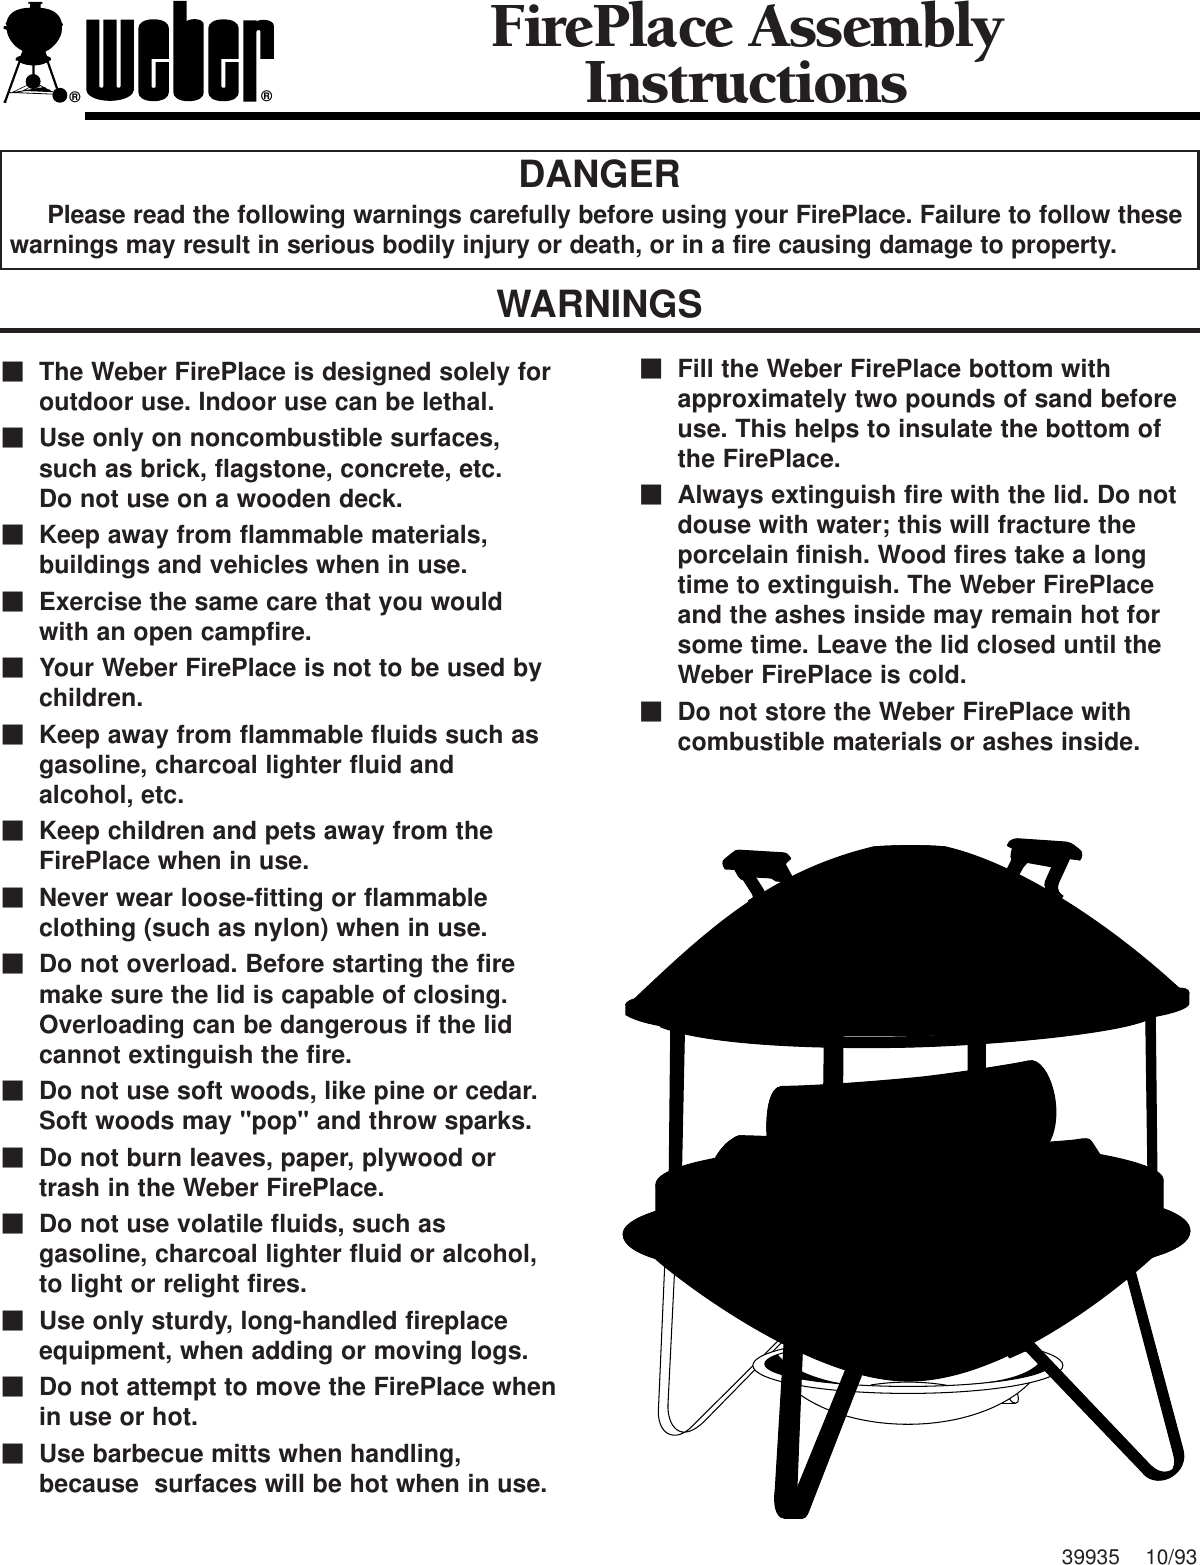 Weber Indoor Fireplace Users Manual Assembly Instructions